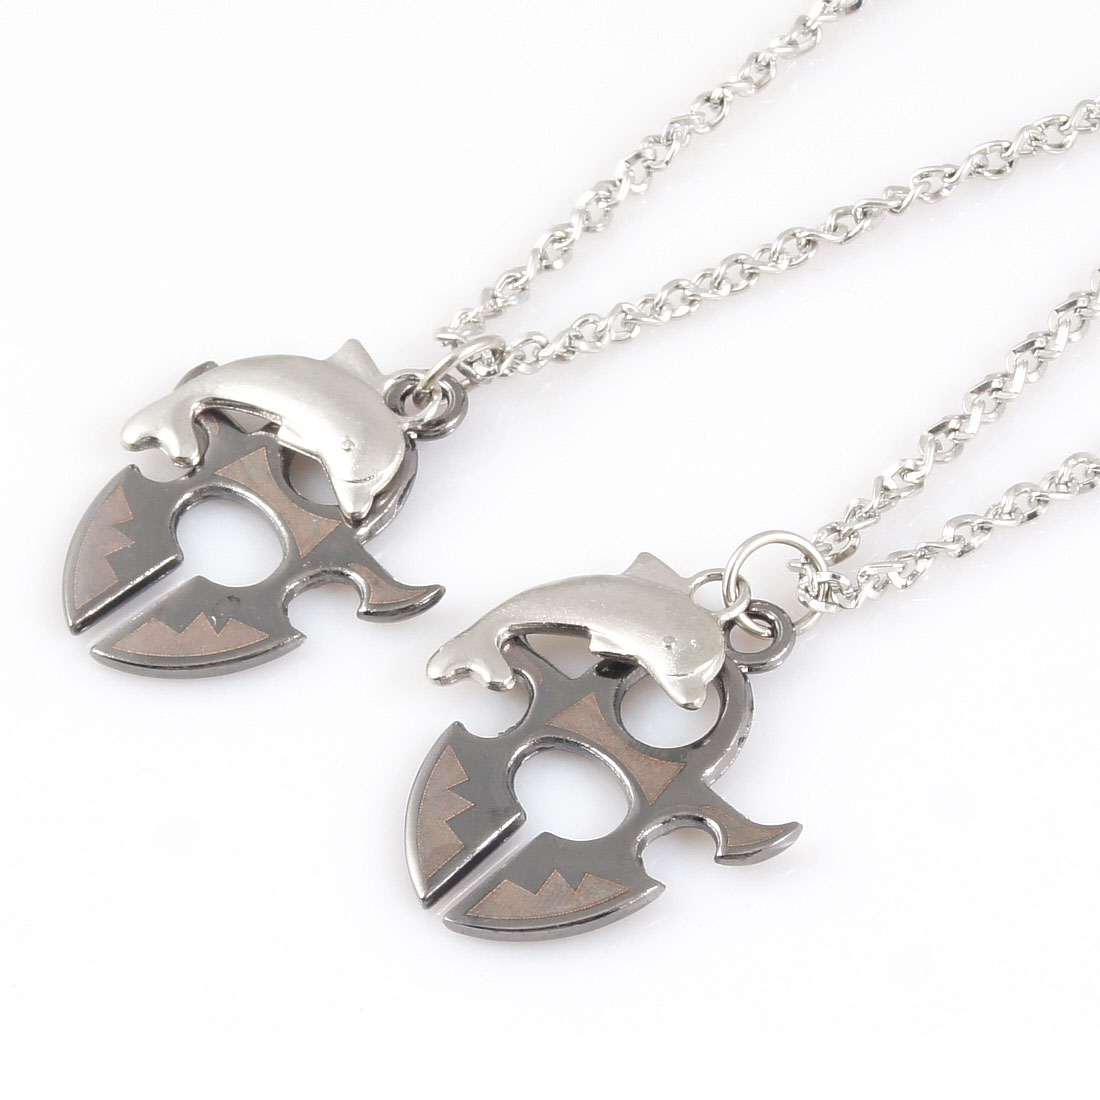 Lover Dolphin Pendant Siver Tone Gray Metal Lobster Clasp Necklaces 2 Pcs